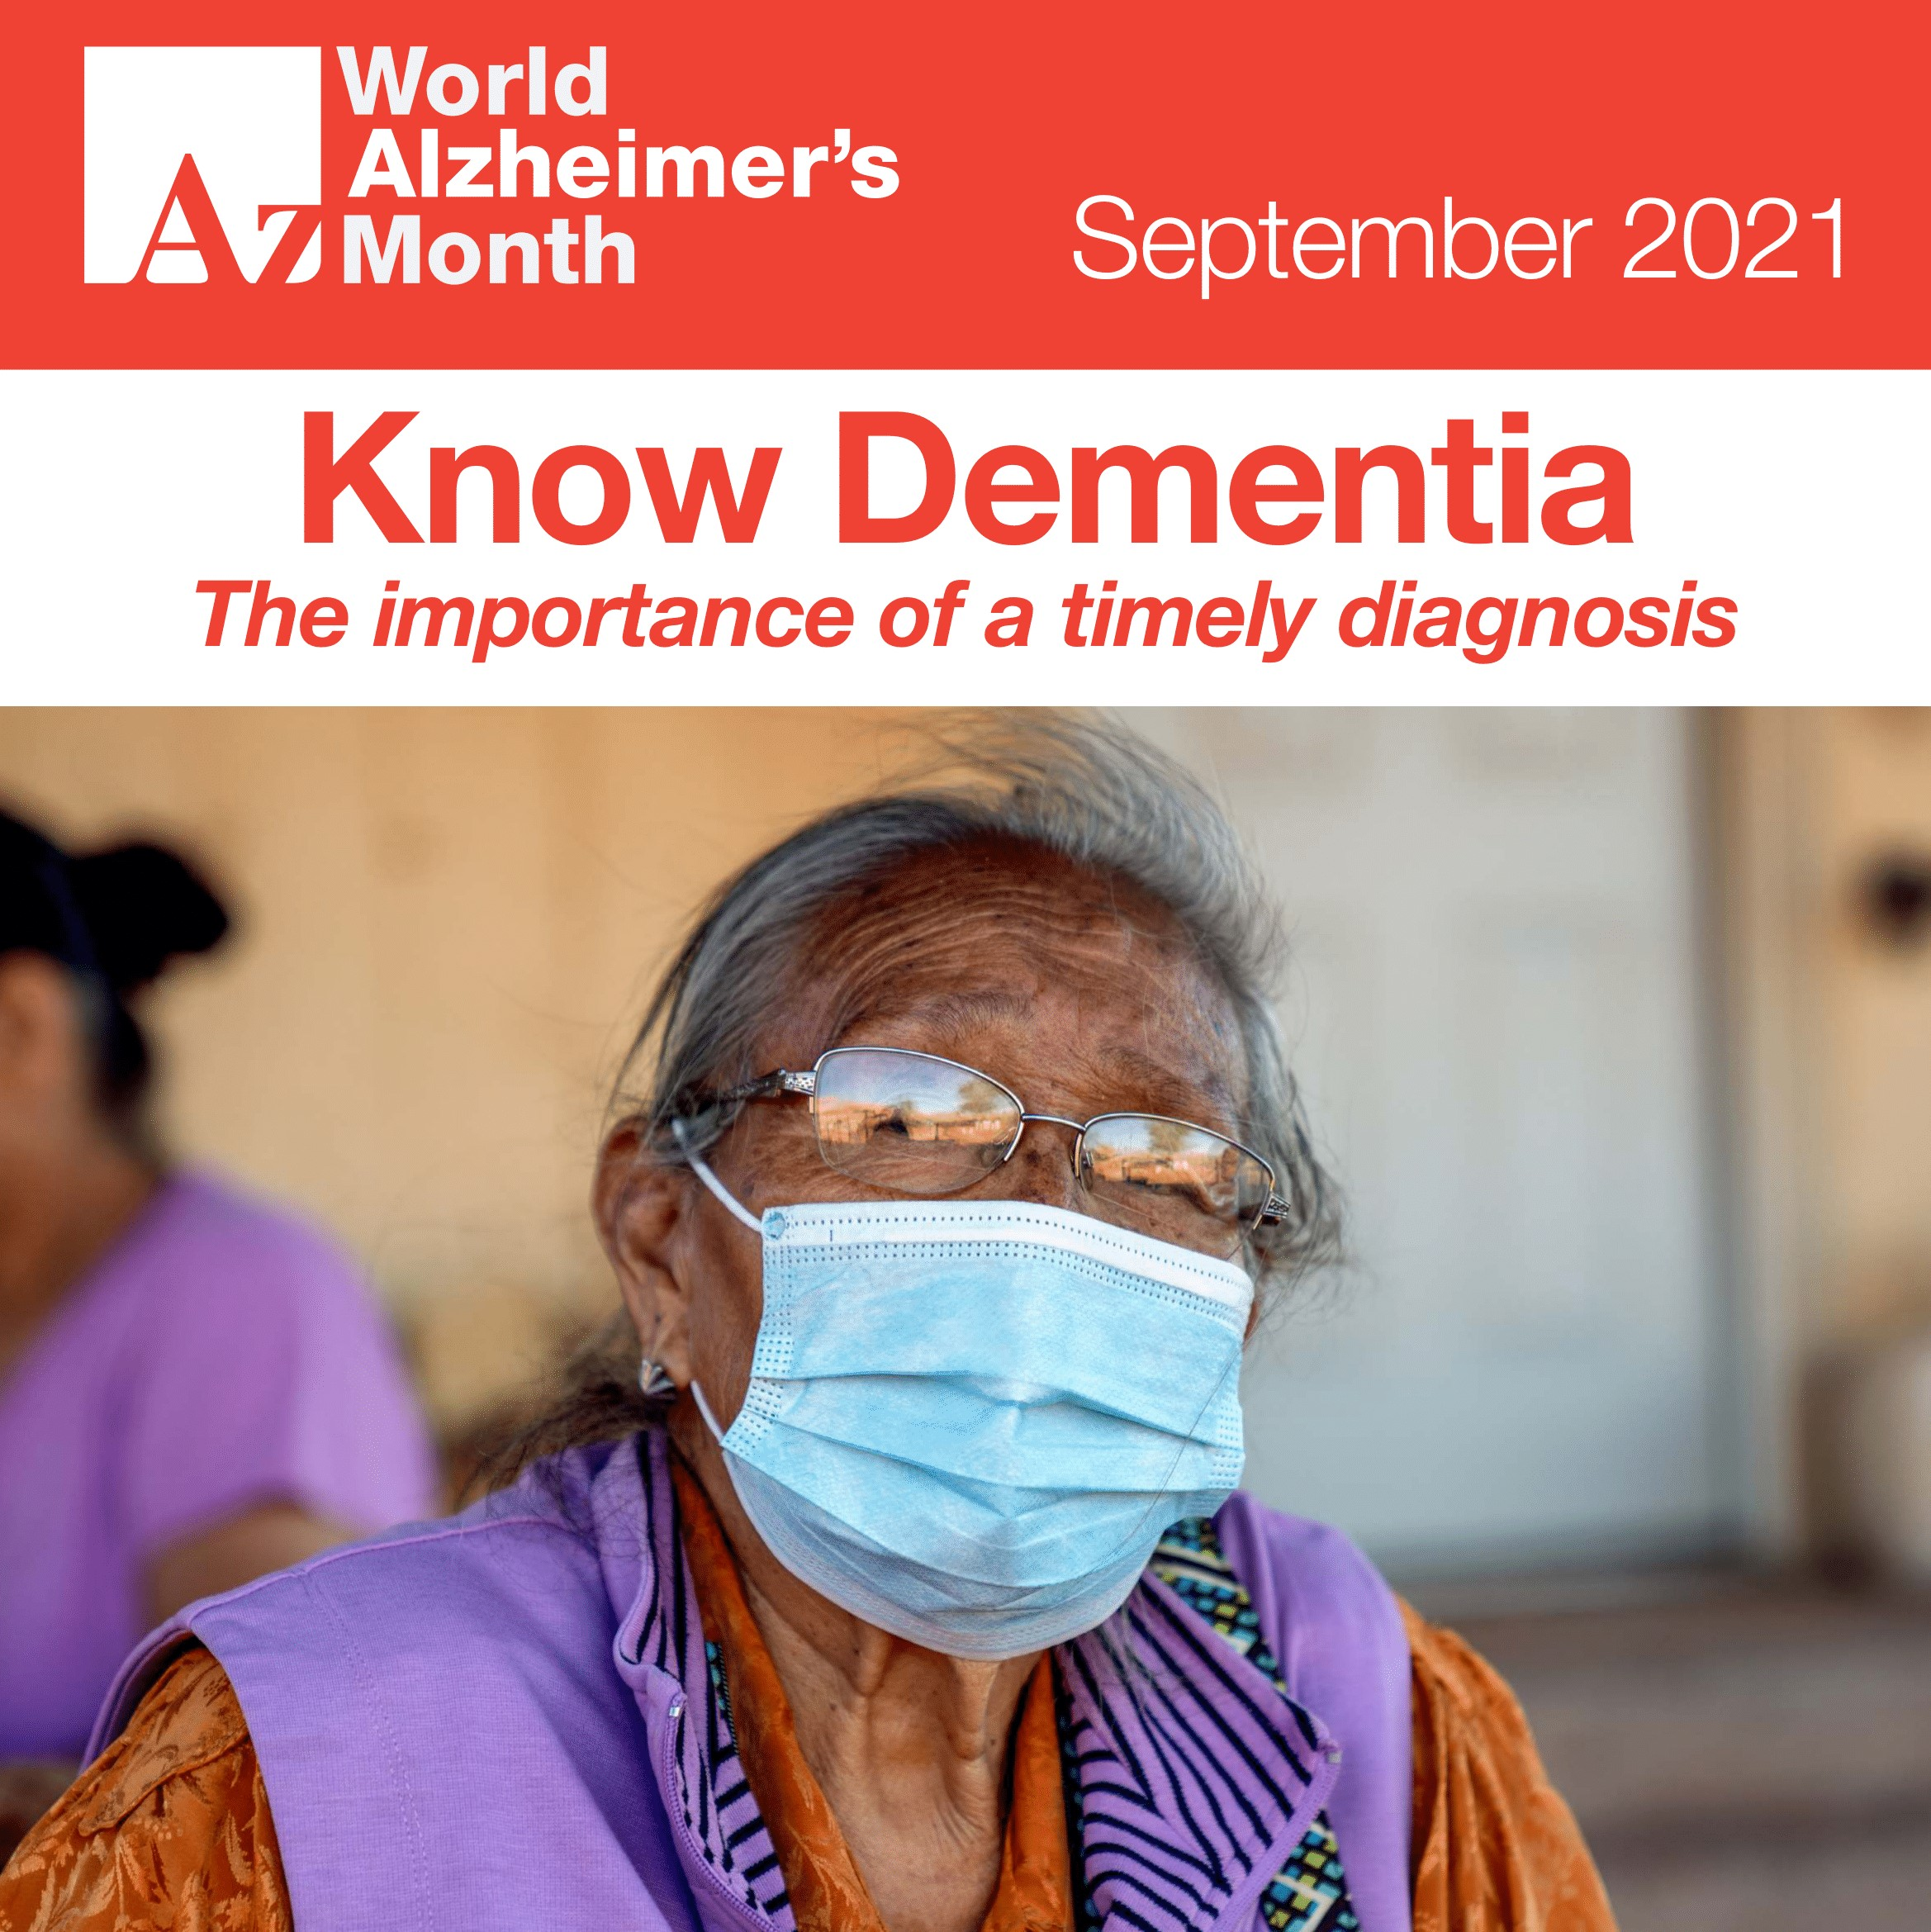 """Cover Image: A photo of an elderly South Asian woman in a mask, with the text """"Know Dementia: The importance of a timely diagnosis."""""""